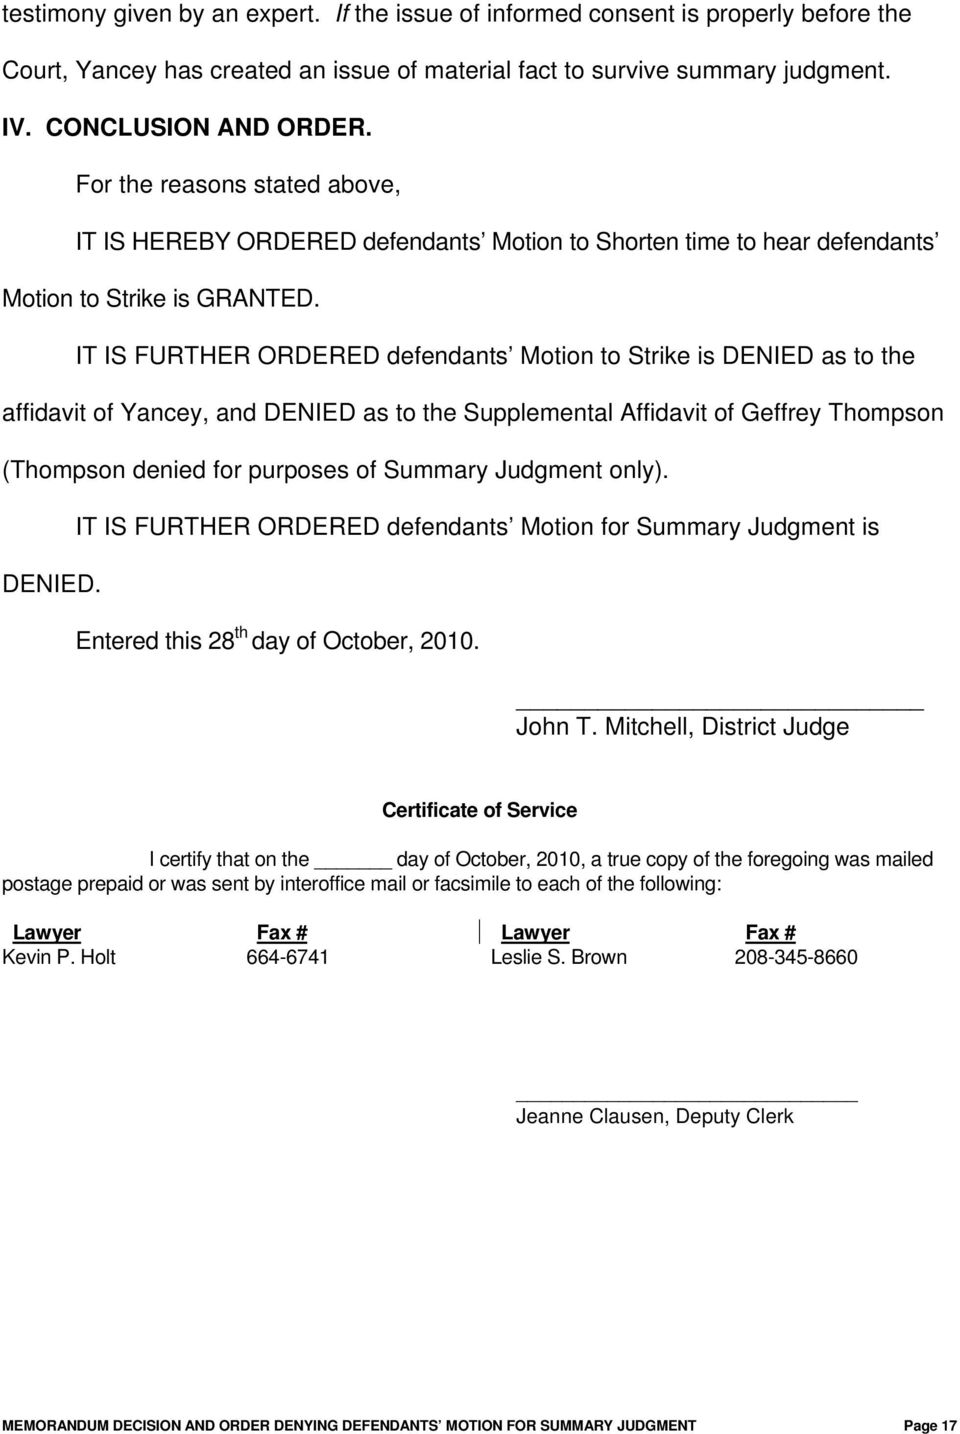 IT IS FURTHER ORDERED defendants Motion to Strike is DENIED as to the affidavit of Yancey, and DENIED as to the Supplemental Affidavit of Geffrey Thompson (Thompson denied for purposes of Summary